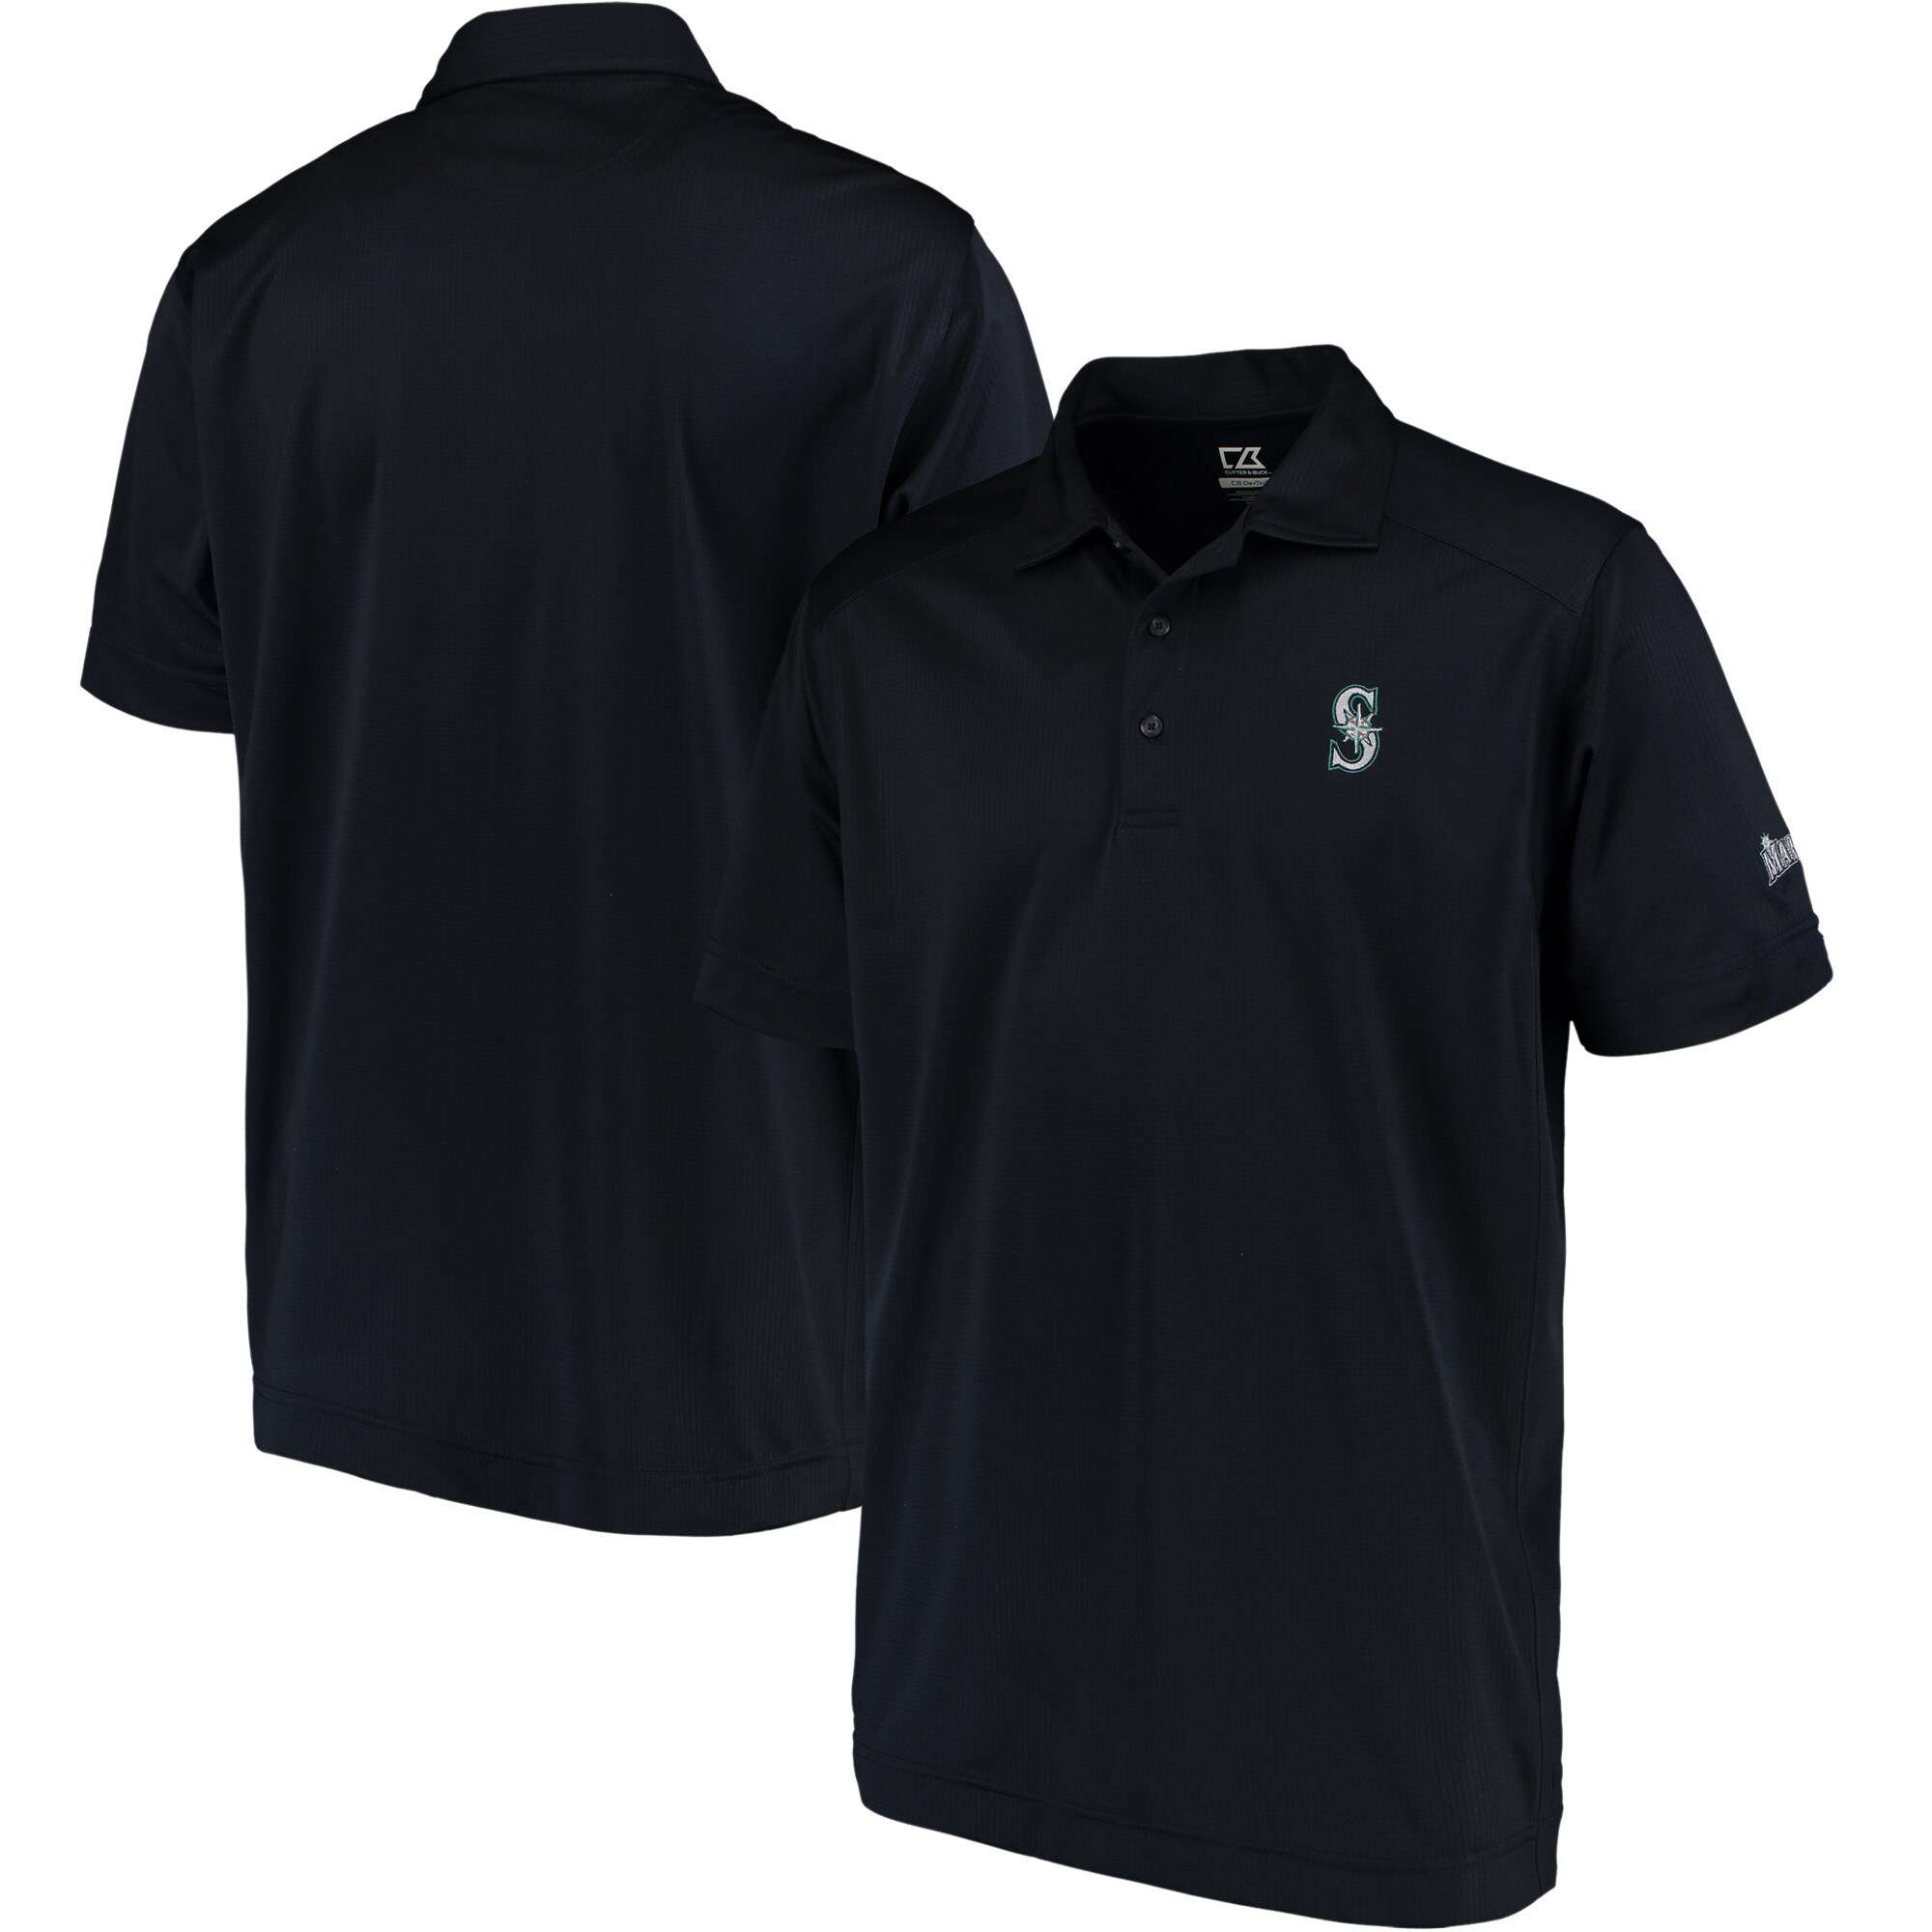 Seattle Mariners CBUK by Cutter & Buck Genre DryTec Polo - Navy